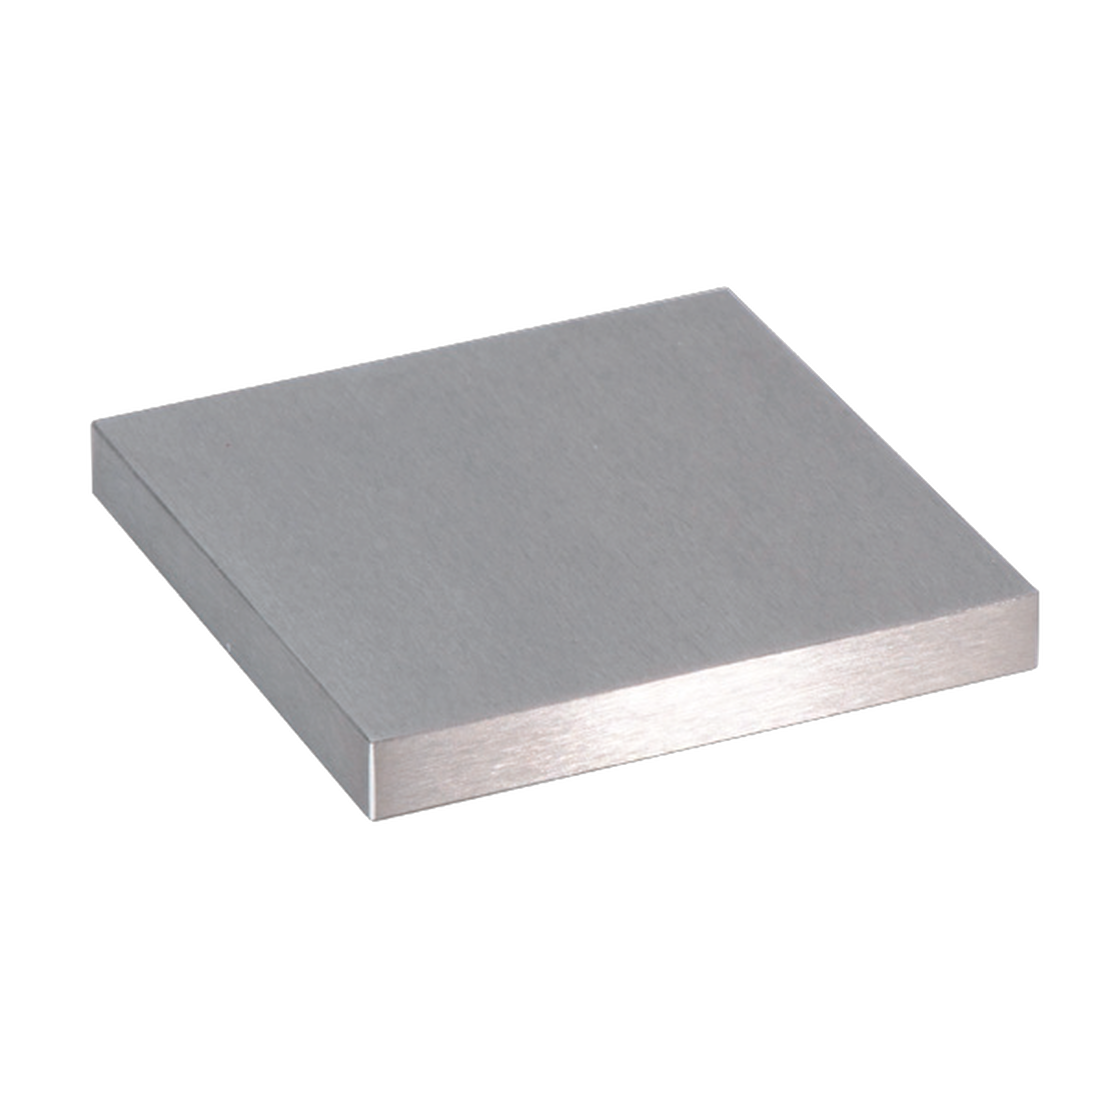 SQUARED GLASS GLUING PLATES, WITH CONTINUOUS EDGE, [/] 81X81MM